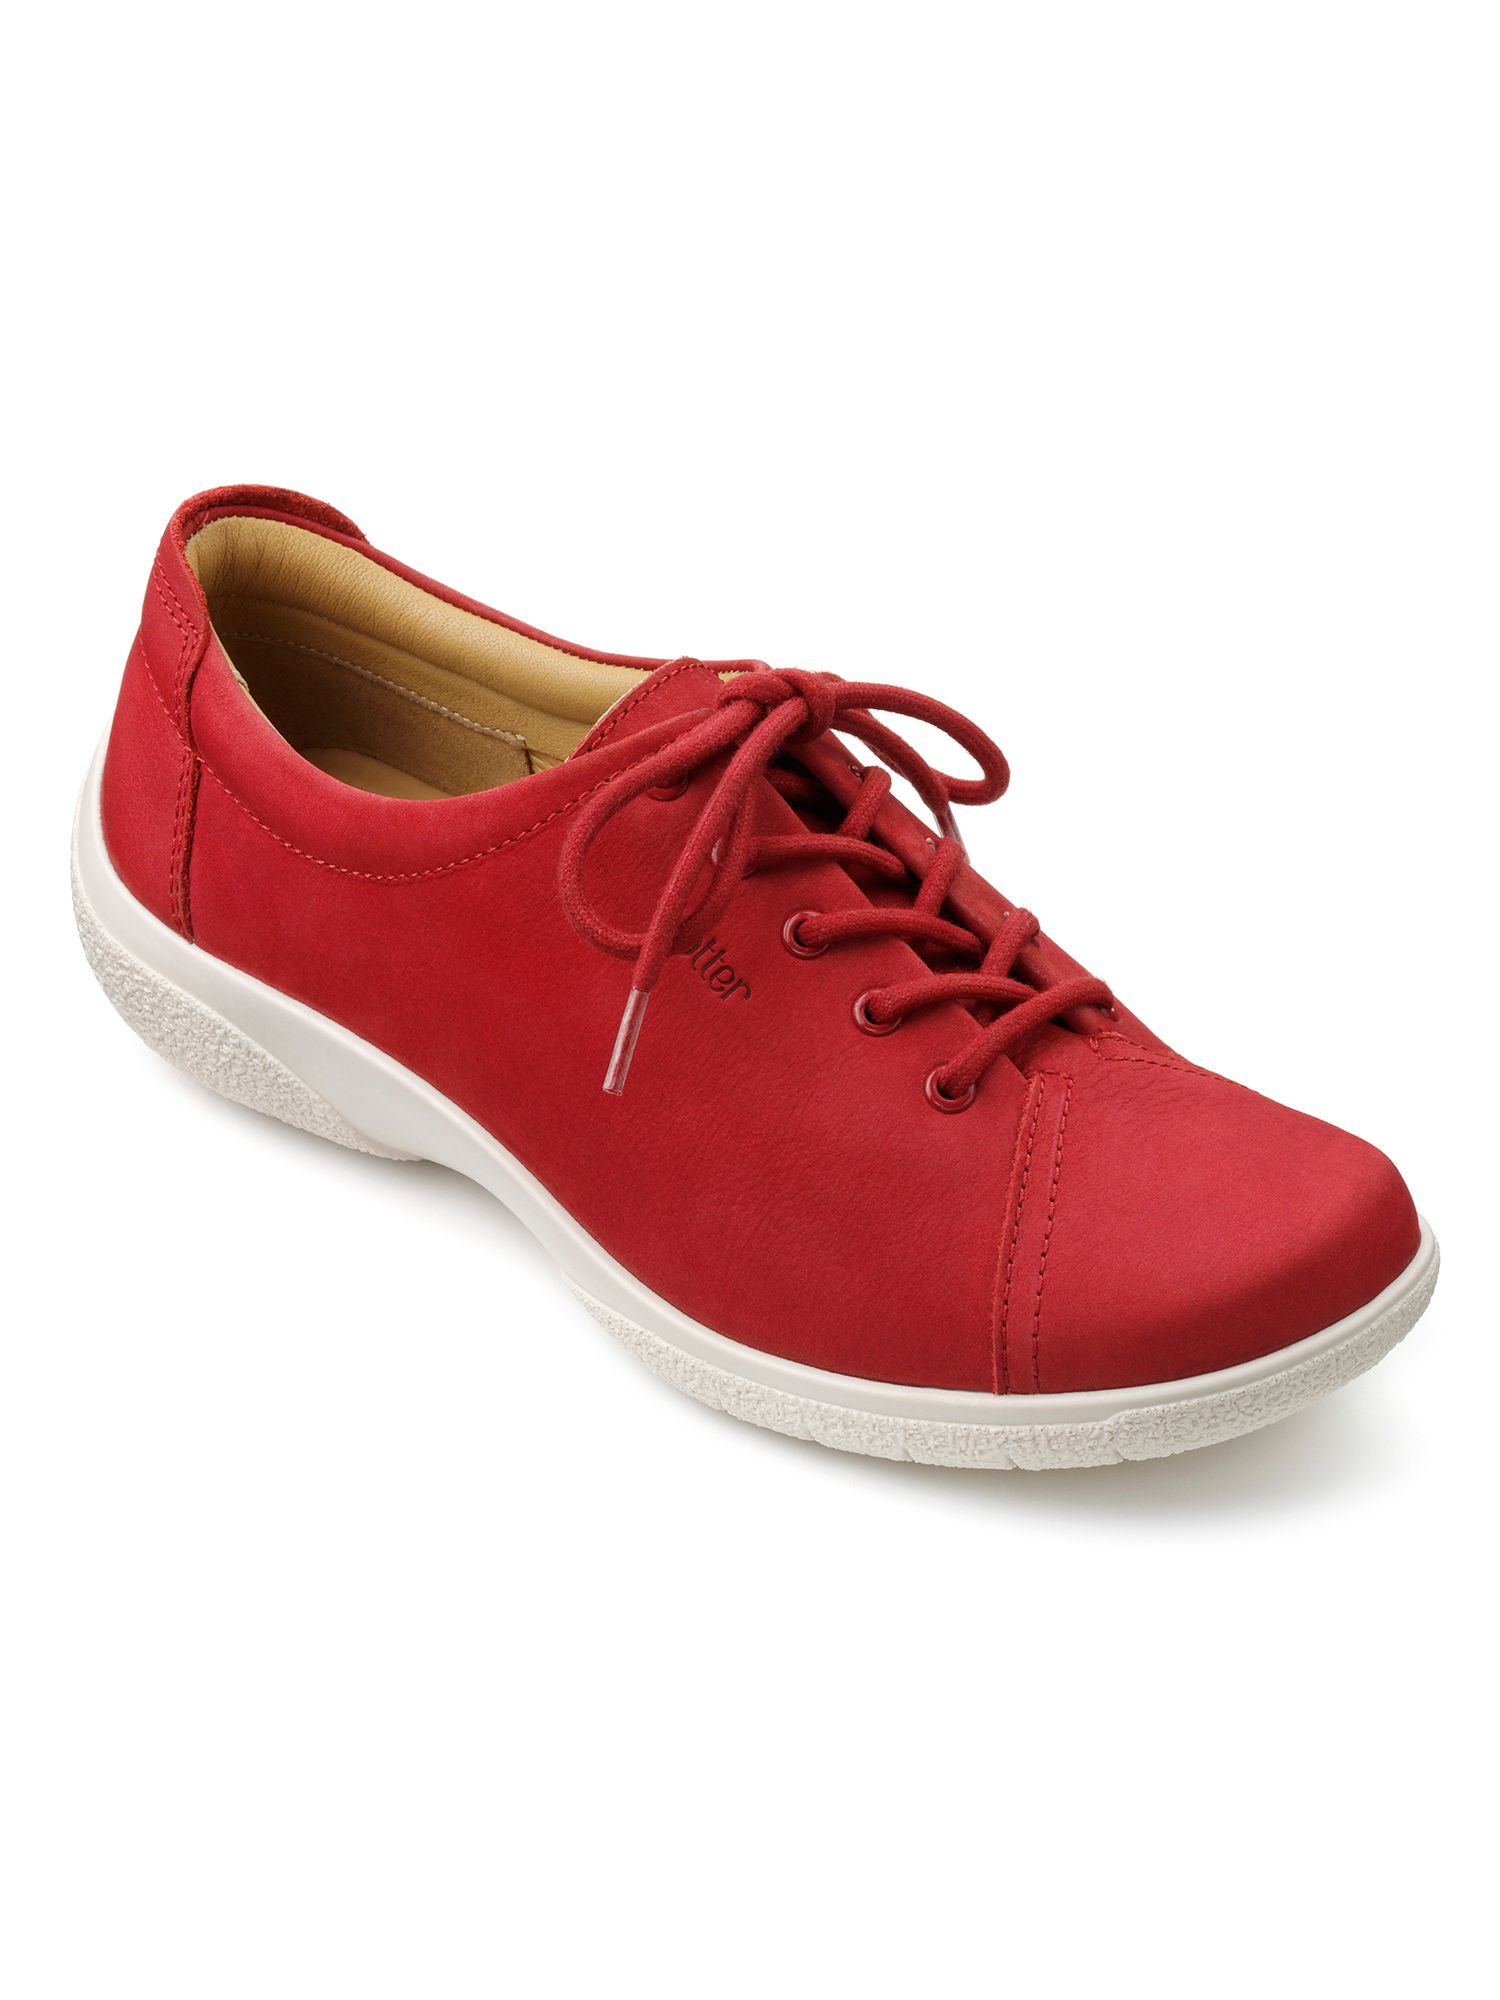 Hotter Dew Original Extra Wide Shoes, Red